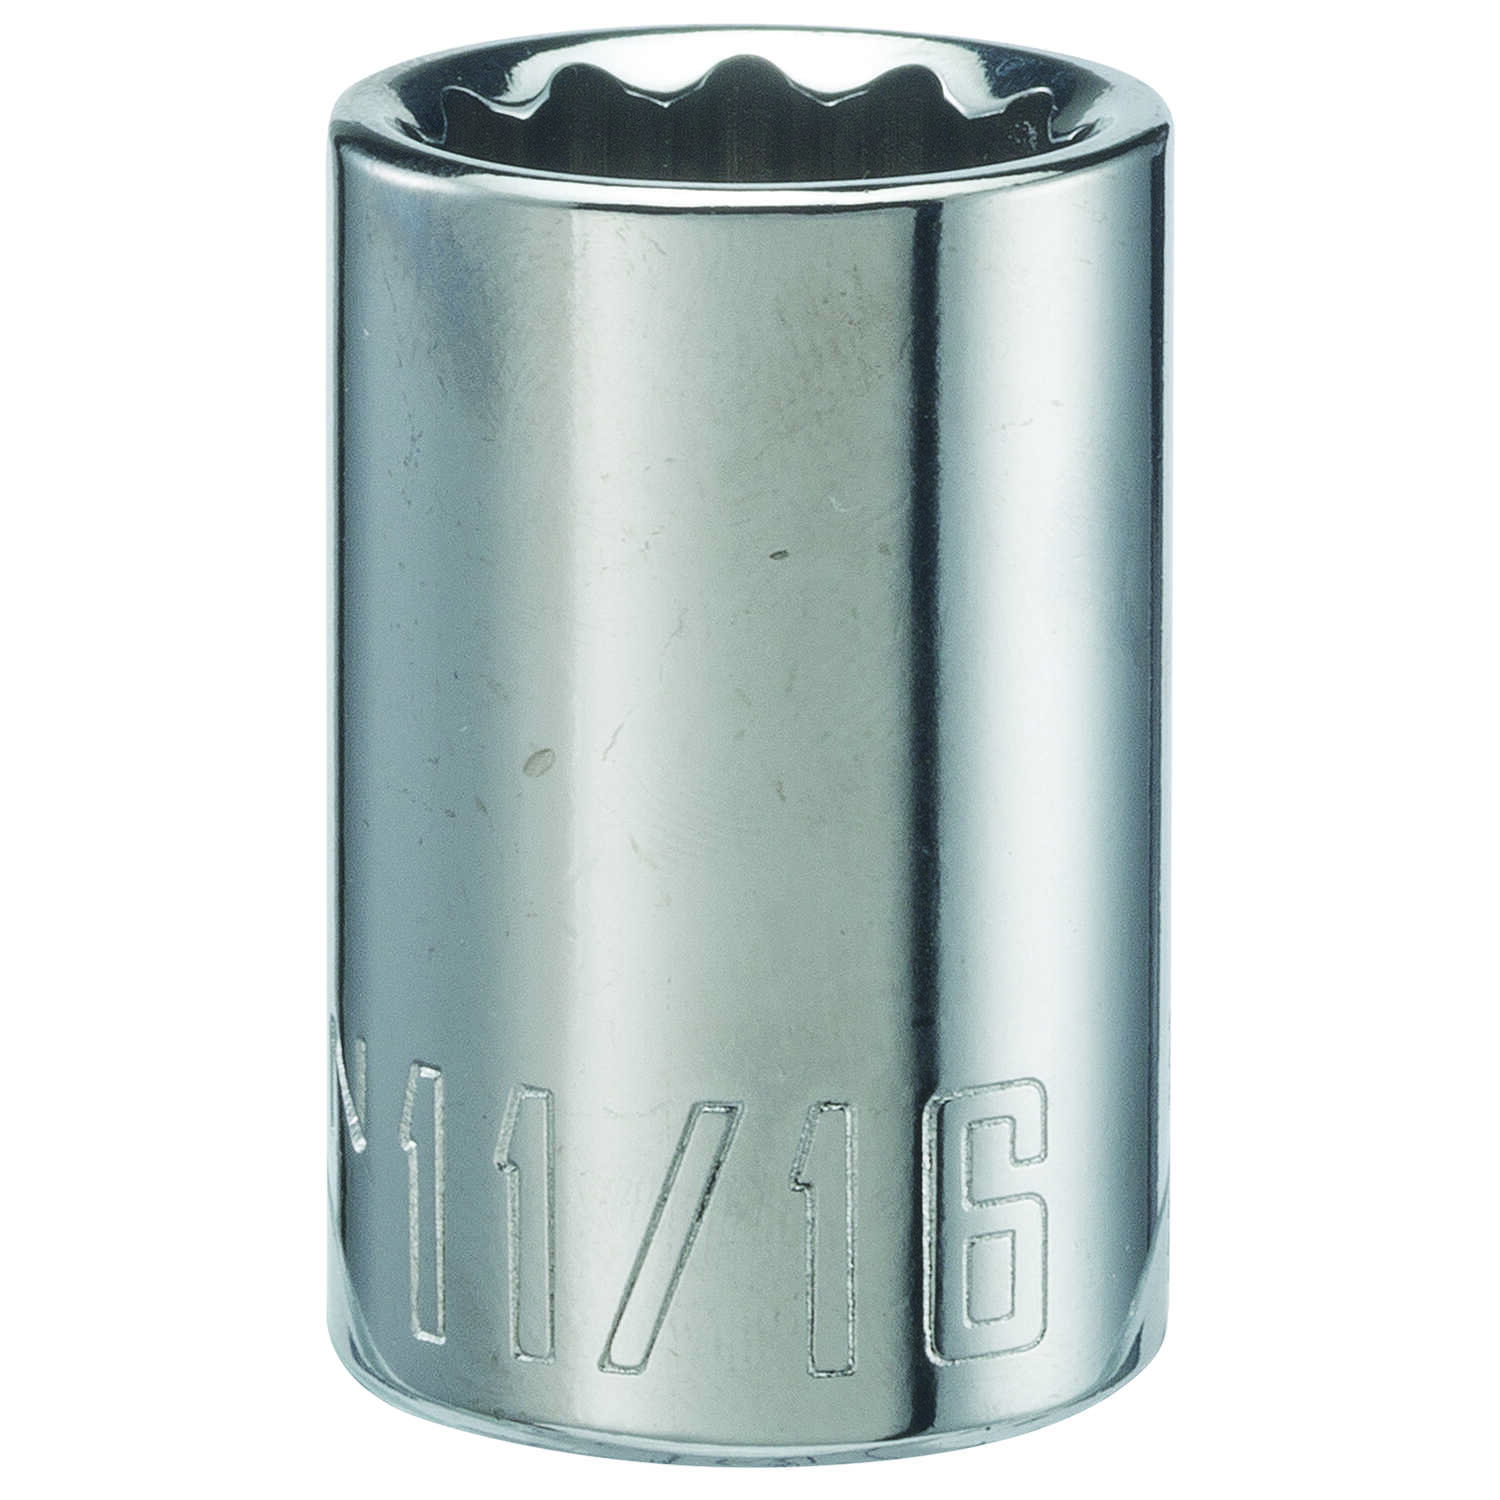 Craftsman  11/16 in.  x 1/2 in. drive  SAE  12 Point Standard  Socket  1 pc.